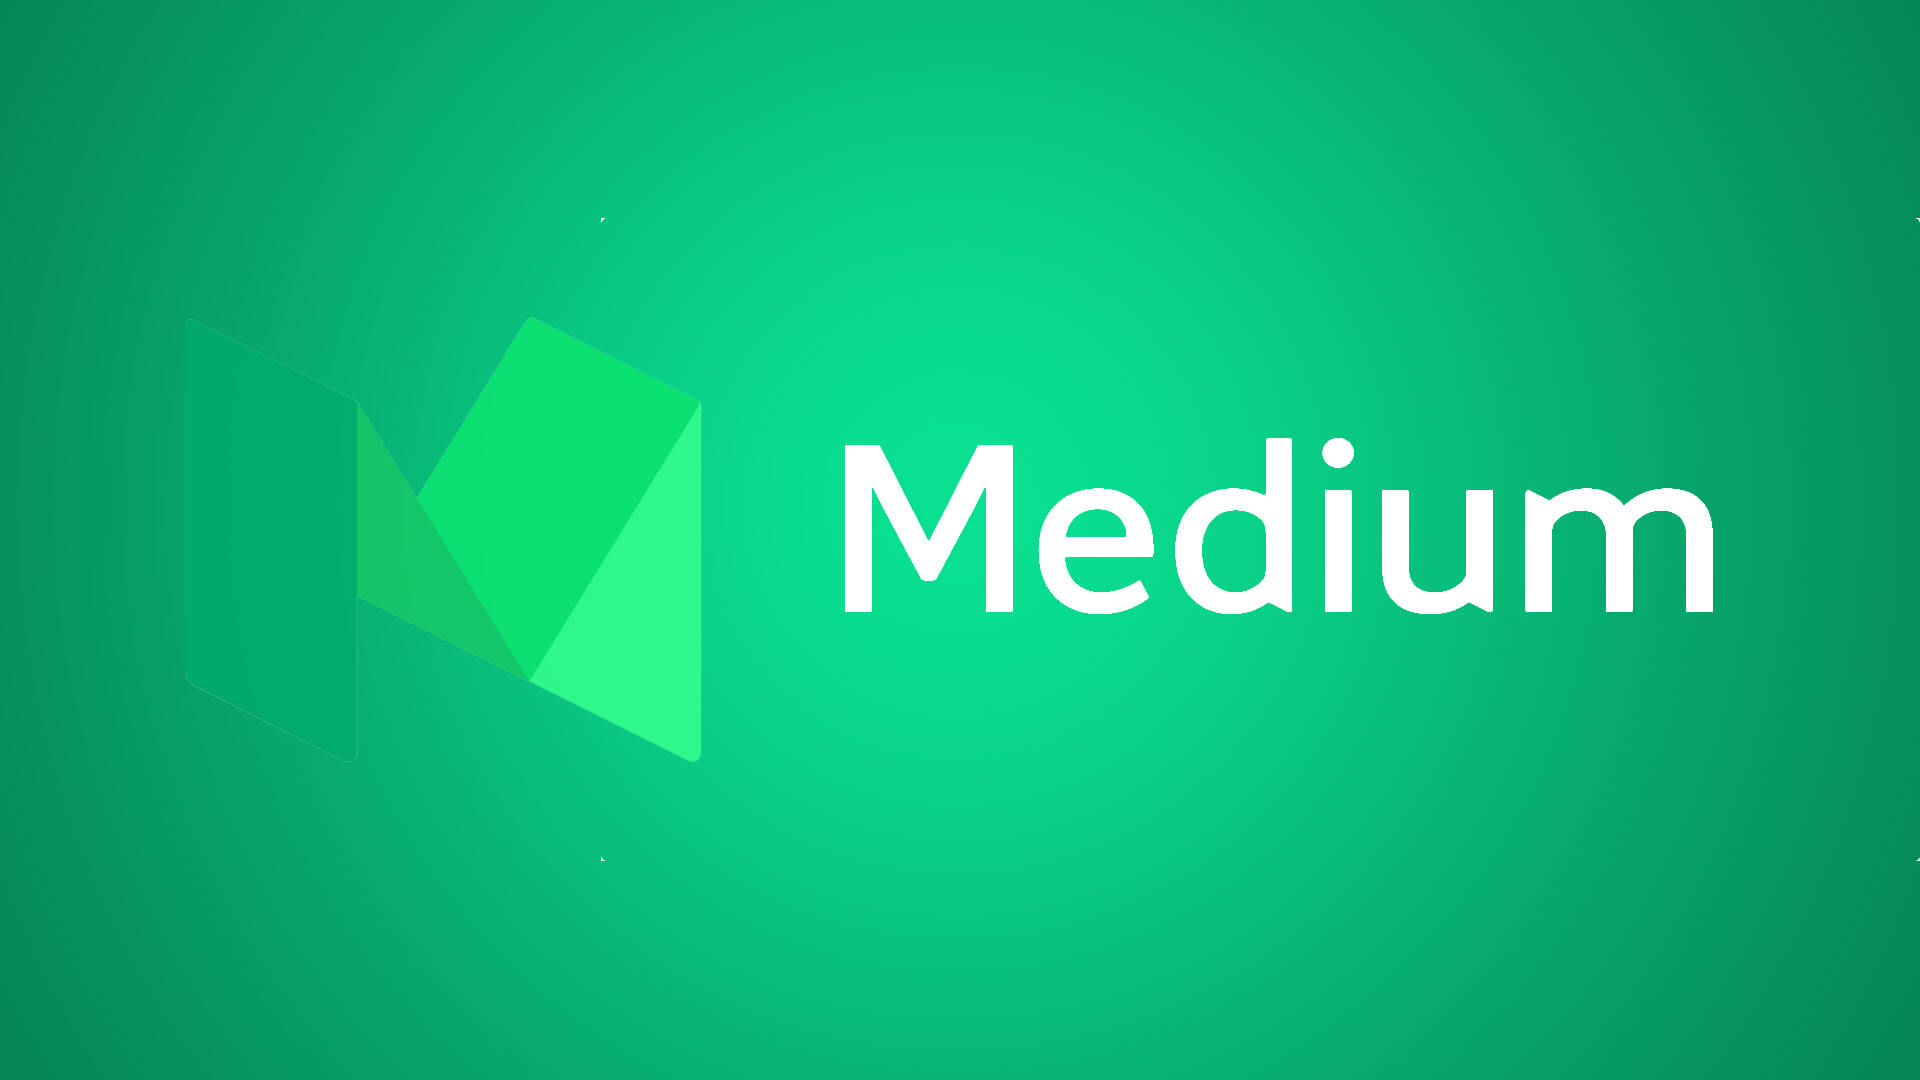 Medium will eliminate its Promoted Stories ad product following layoffs